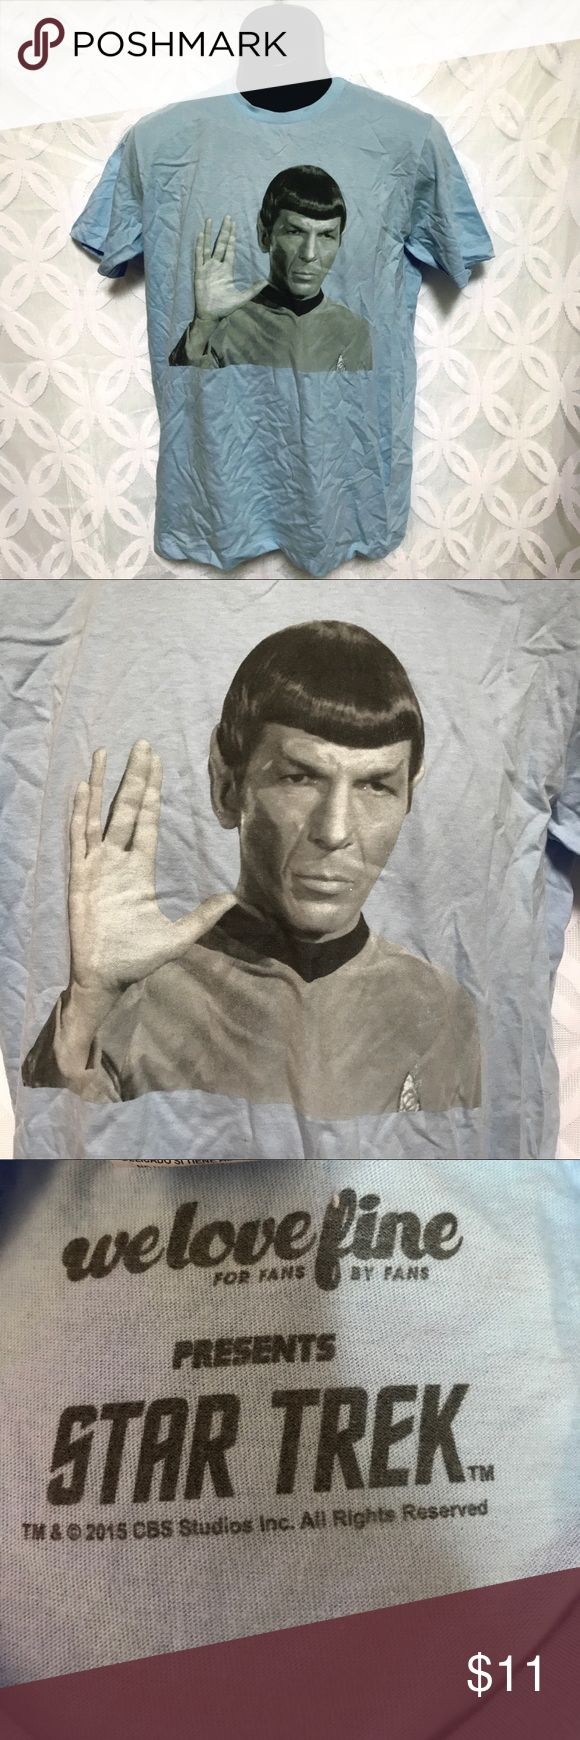 """Star Trek Spock Vulcan Salute Live Long & Prosper Star Trek Spock Vulcan Salute Live Long Prosper Tee NWOT.    Measurements Laying Flat Size 🔹 M Armpit to Armpit 🔹20"""" Shoulder to Hem 🔹29"""" Bundle to Save 🤓 Sorry NO outside transactions 🚫 NO trades 🚫 Reasonable Offers welcomed 👍 NO Low balling 👎 NO modeling 👎 NO Holds👎 All items from a pet 😼and Smoke Free Home  Happy Poshing 🤗 Star Trek Shirts Tees - Short Sleeve"""